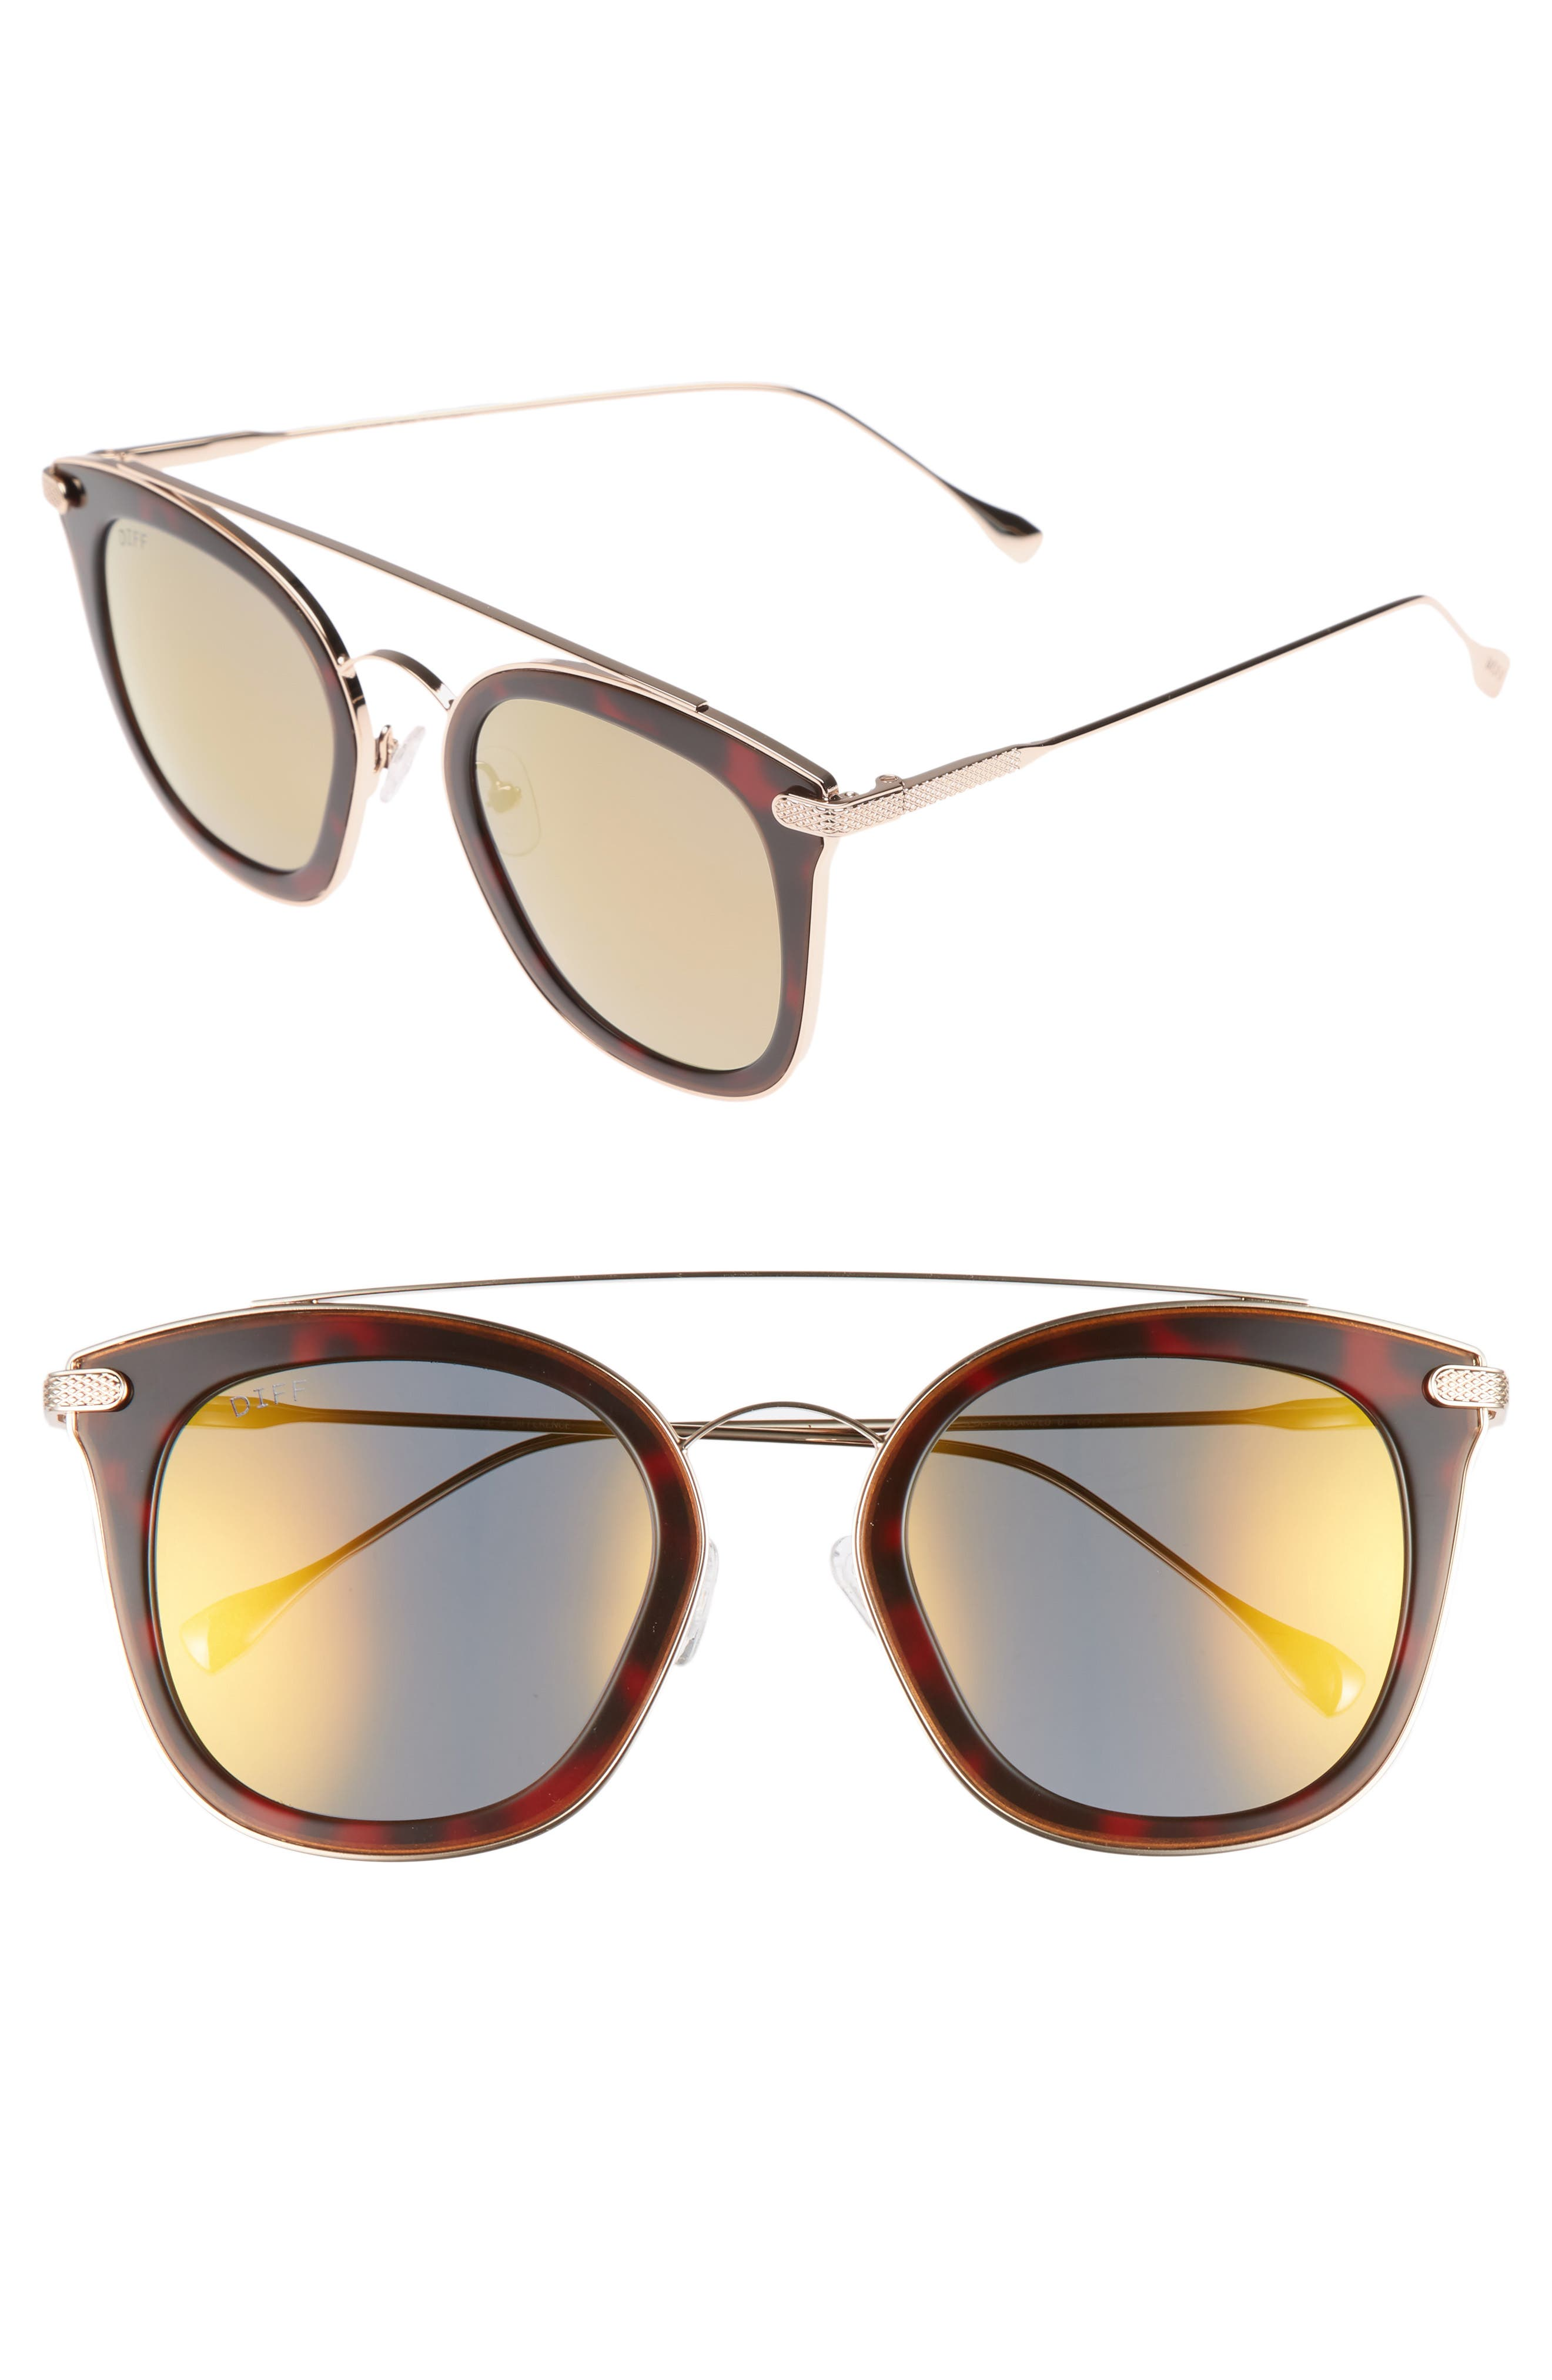 Alternate Image 1 Selected - DIFF Zoey 51mm Polarized Sunglasses